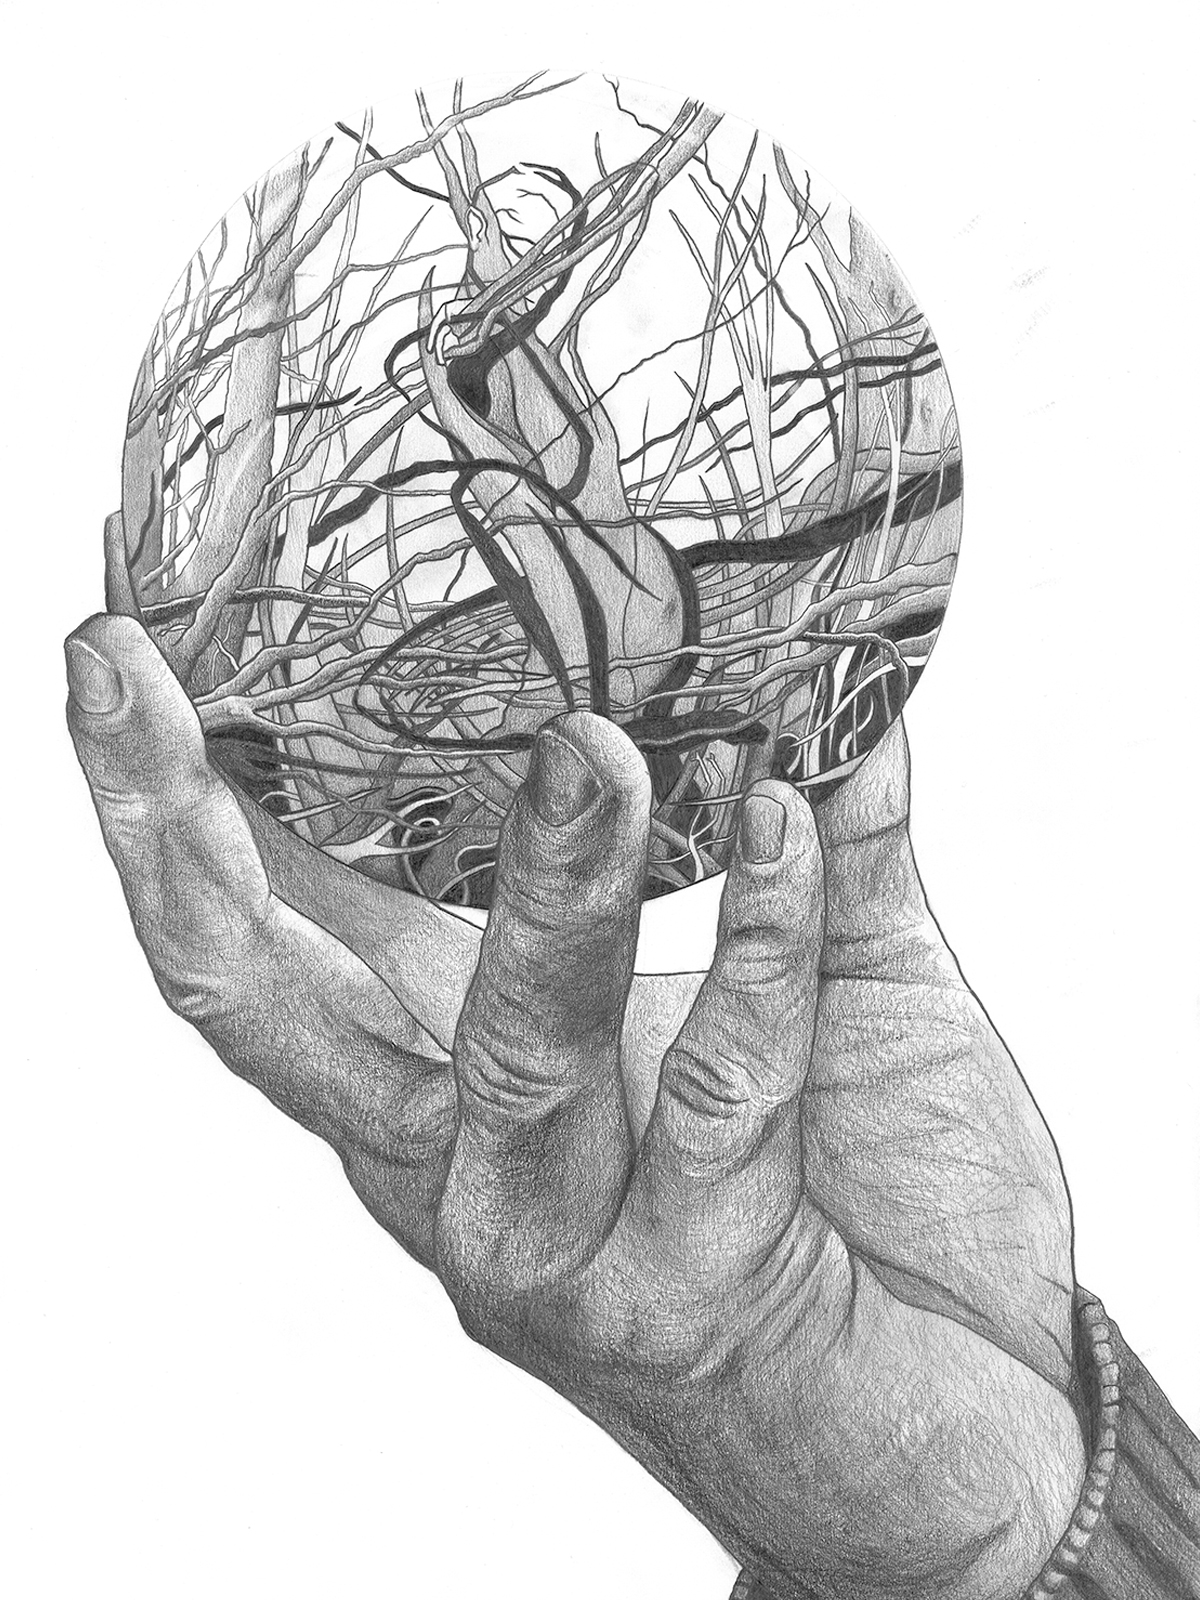 Drawings - intricate pencil drawings from London based artist Paul Kingsley Squire